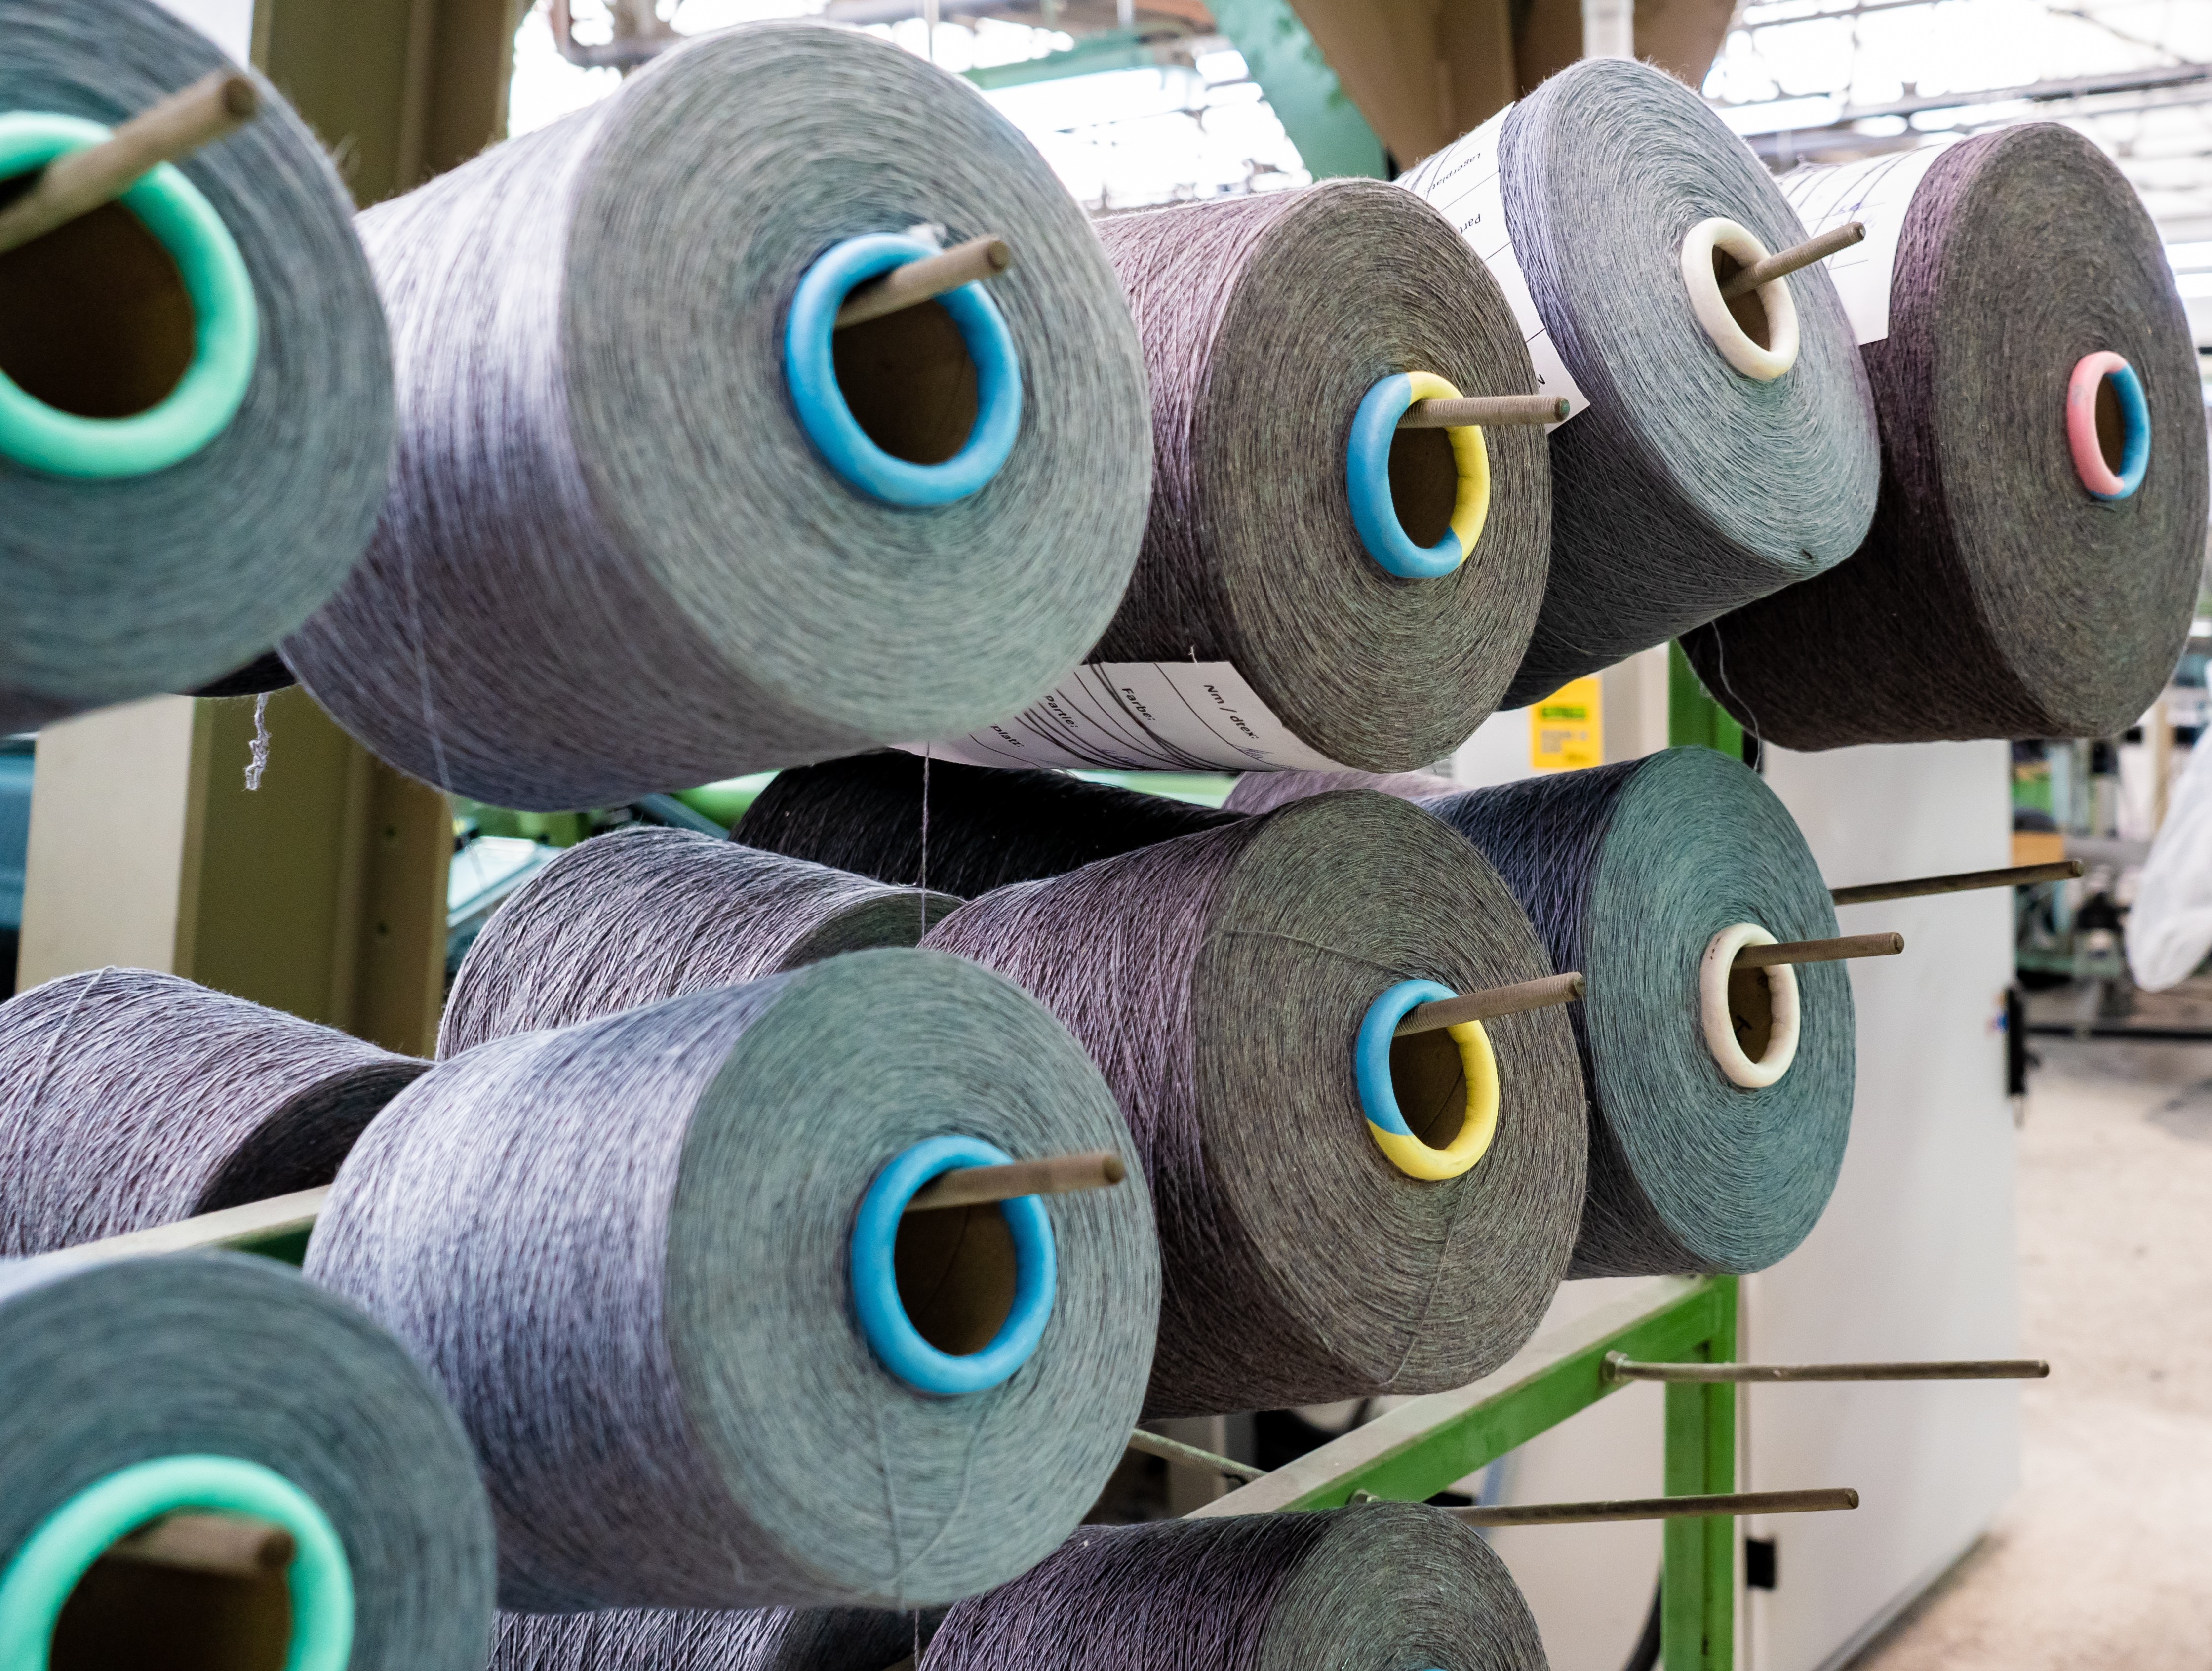 The mechanical recycling process enables the re-use of blended fibres from old clothes, in form of high-quality yarns. © imat-uve.